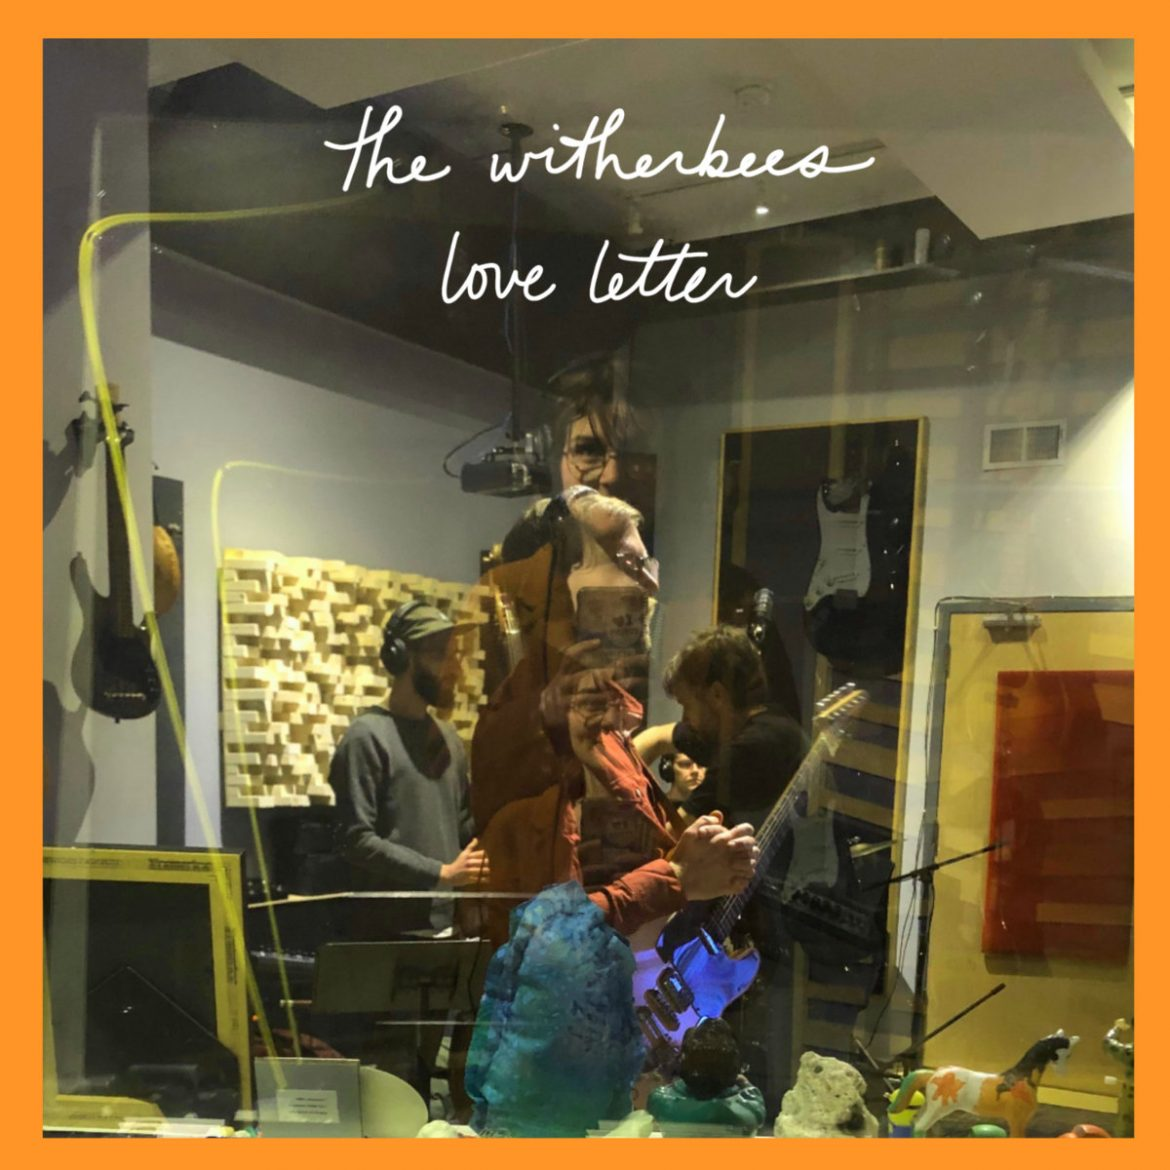 Love Letter - The Witherbees